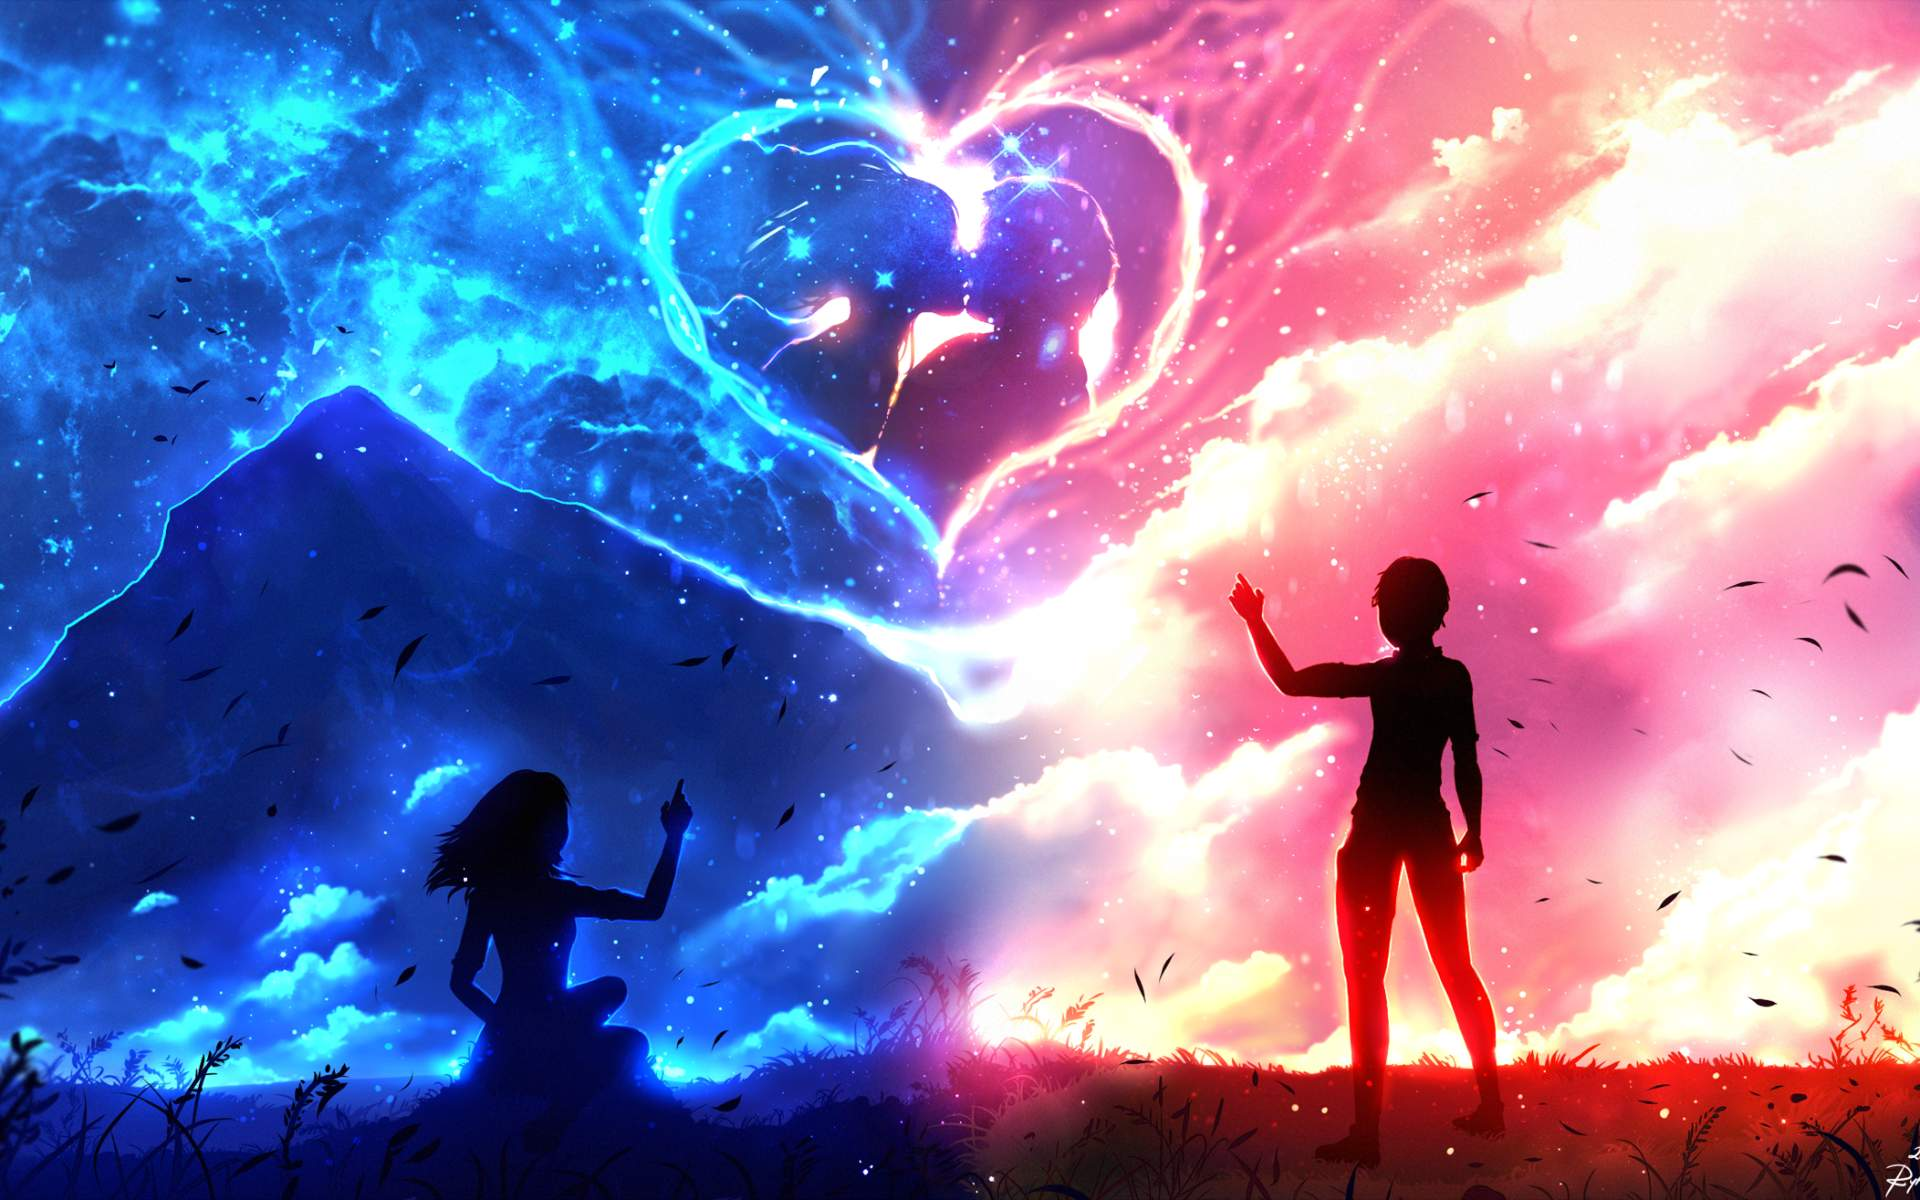 Romantic Anime Wallpapers Top Free Romantic Anime Backgrounds